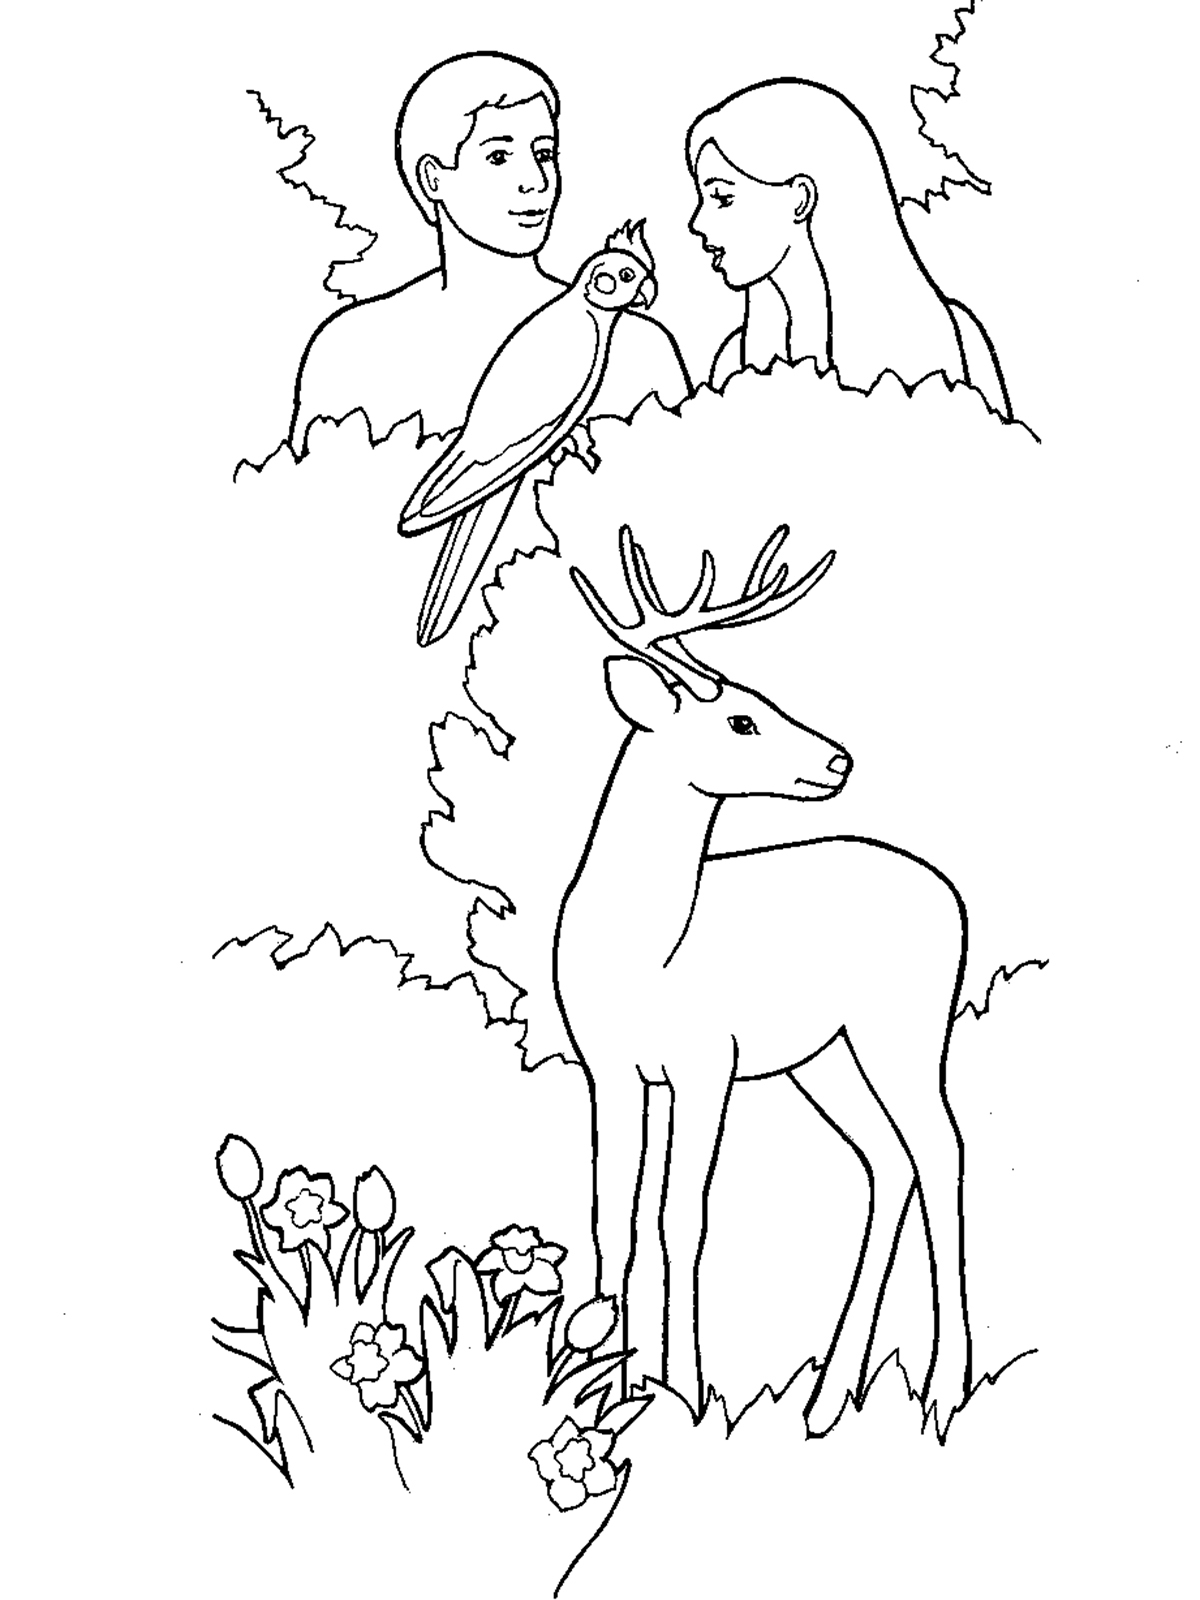 Garden Eden Clipart Creation Story Pencil and In Color Garden to Print Of And Eve Coloring Pages Coloring Pages Download